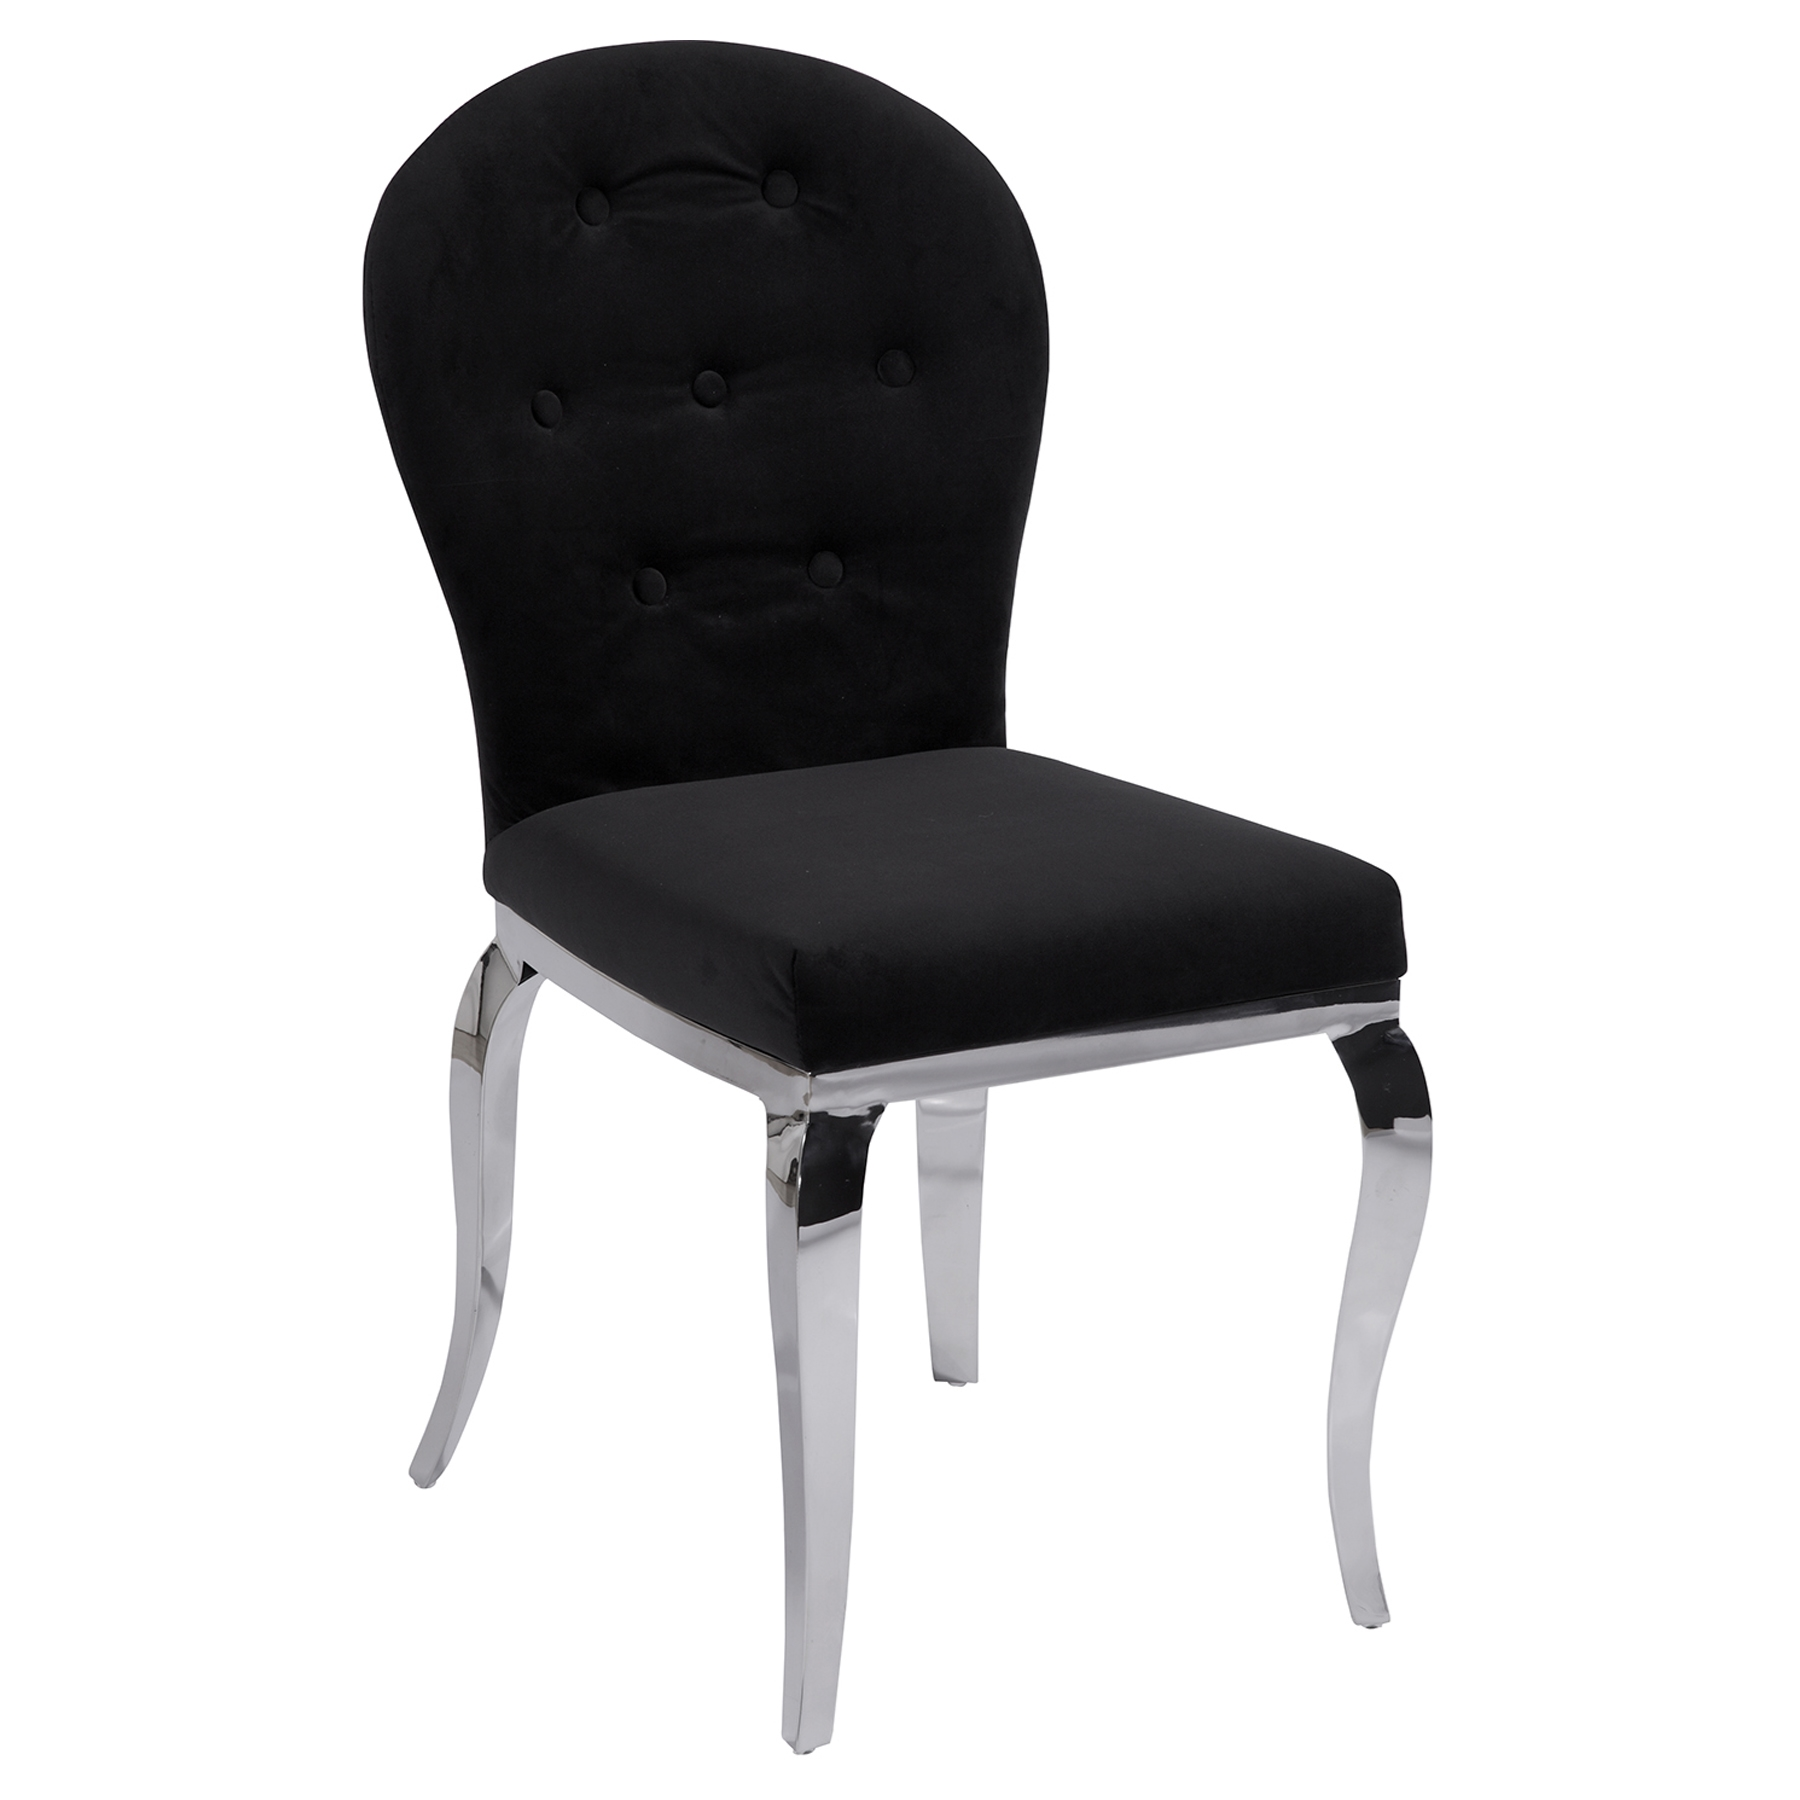 Teresa Arch Back Side Chair - Black, Button Tufted - CI-TERESA-SC-OVL